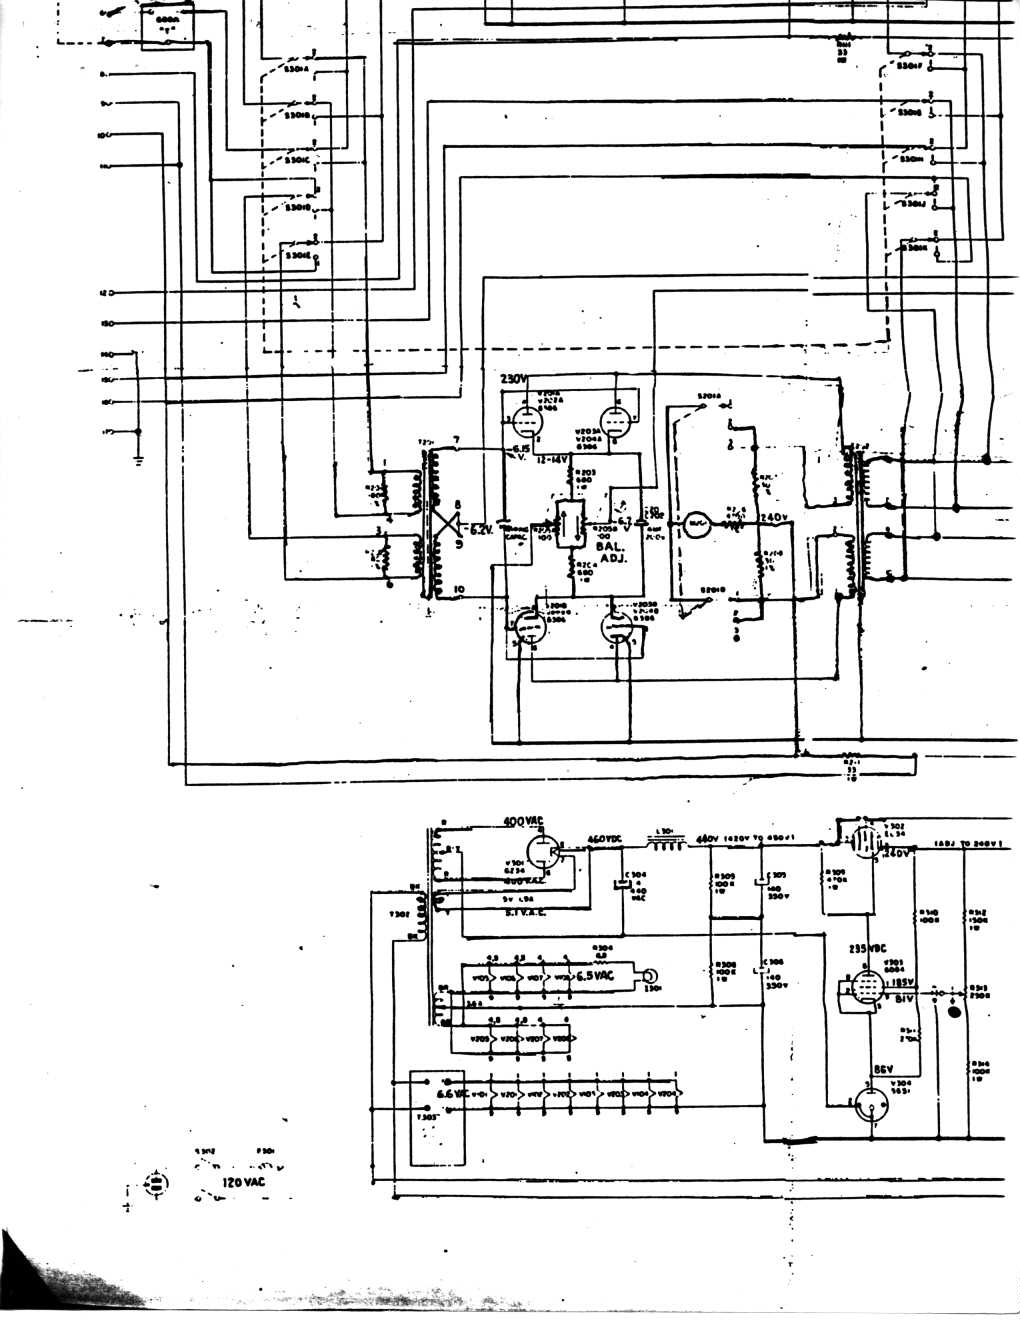 Peachy Schematic Circuit Diagrams Best Place To Find Wiring And Datasheet Wiring Cloud Hemtegremohammedshrineorg